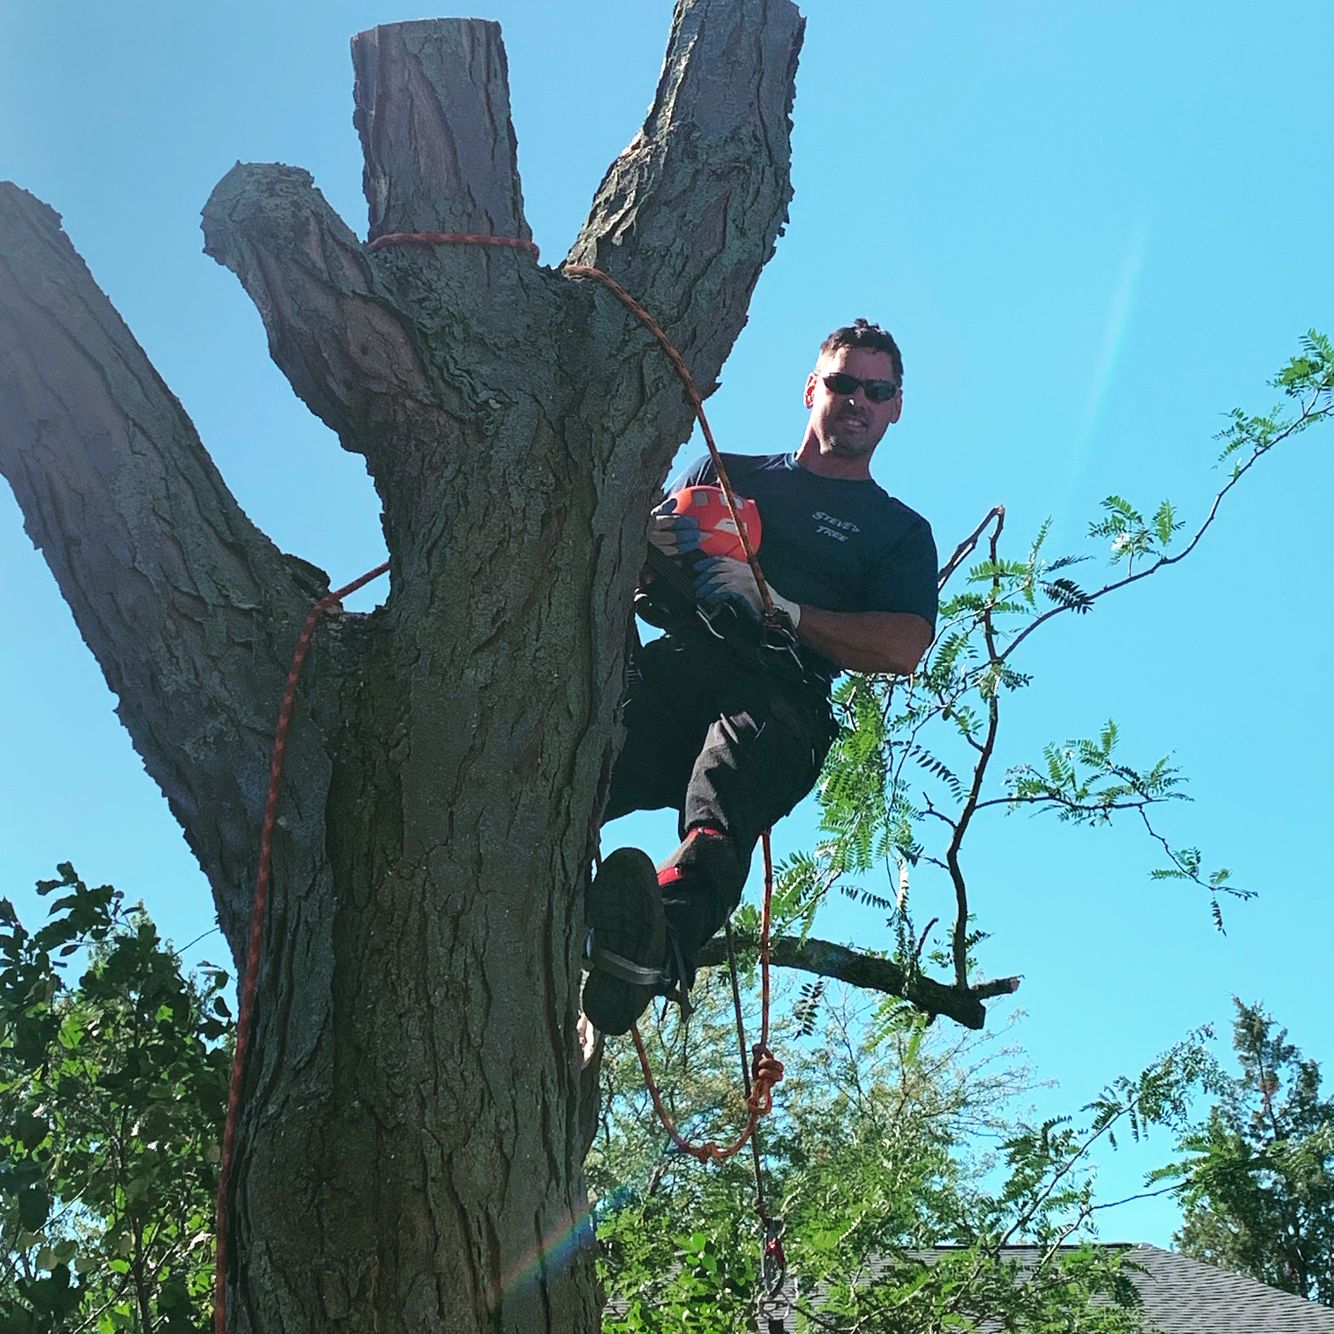 Steve climbing and tree trimming